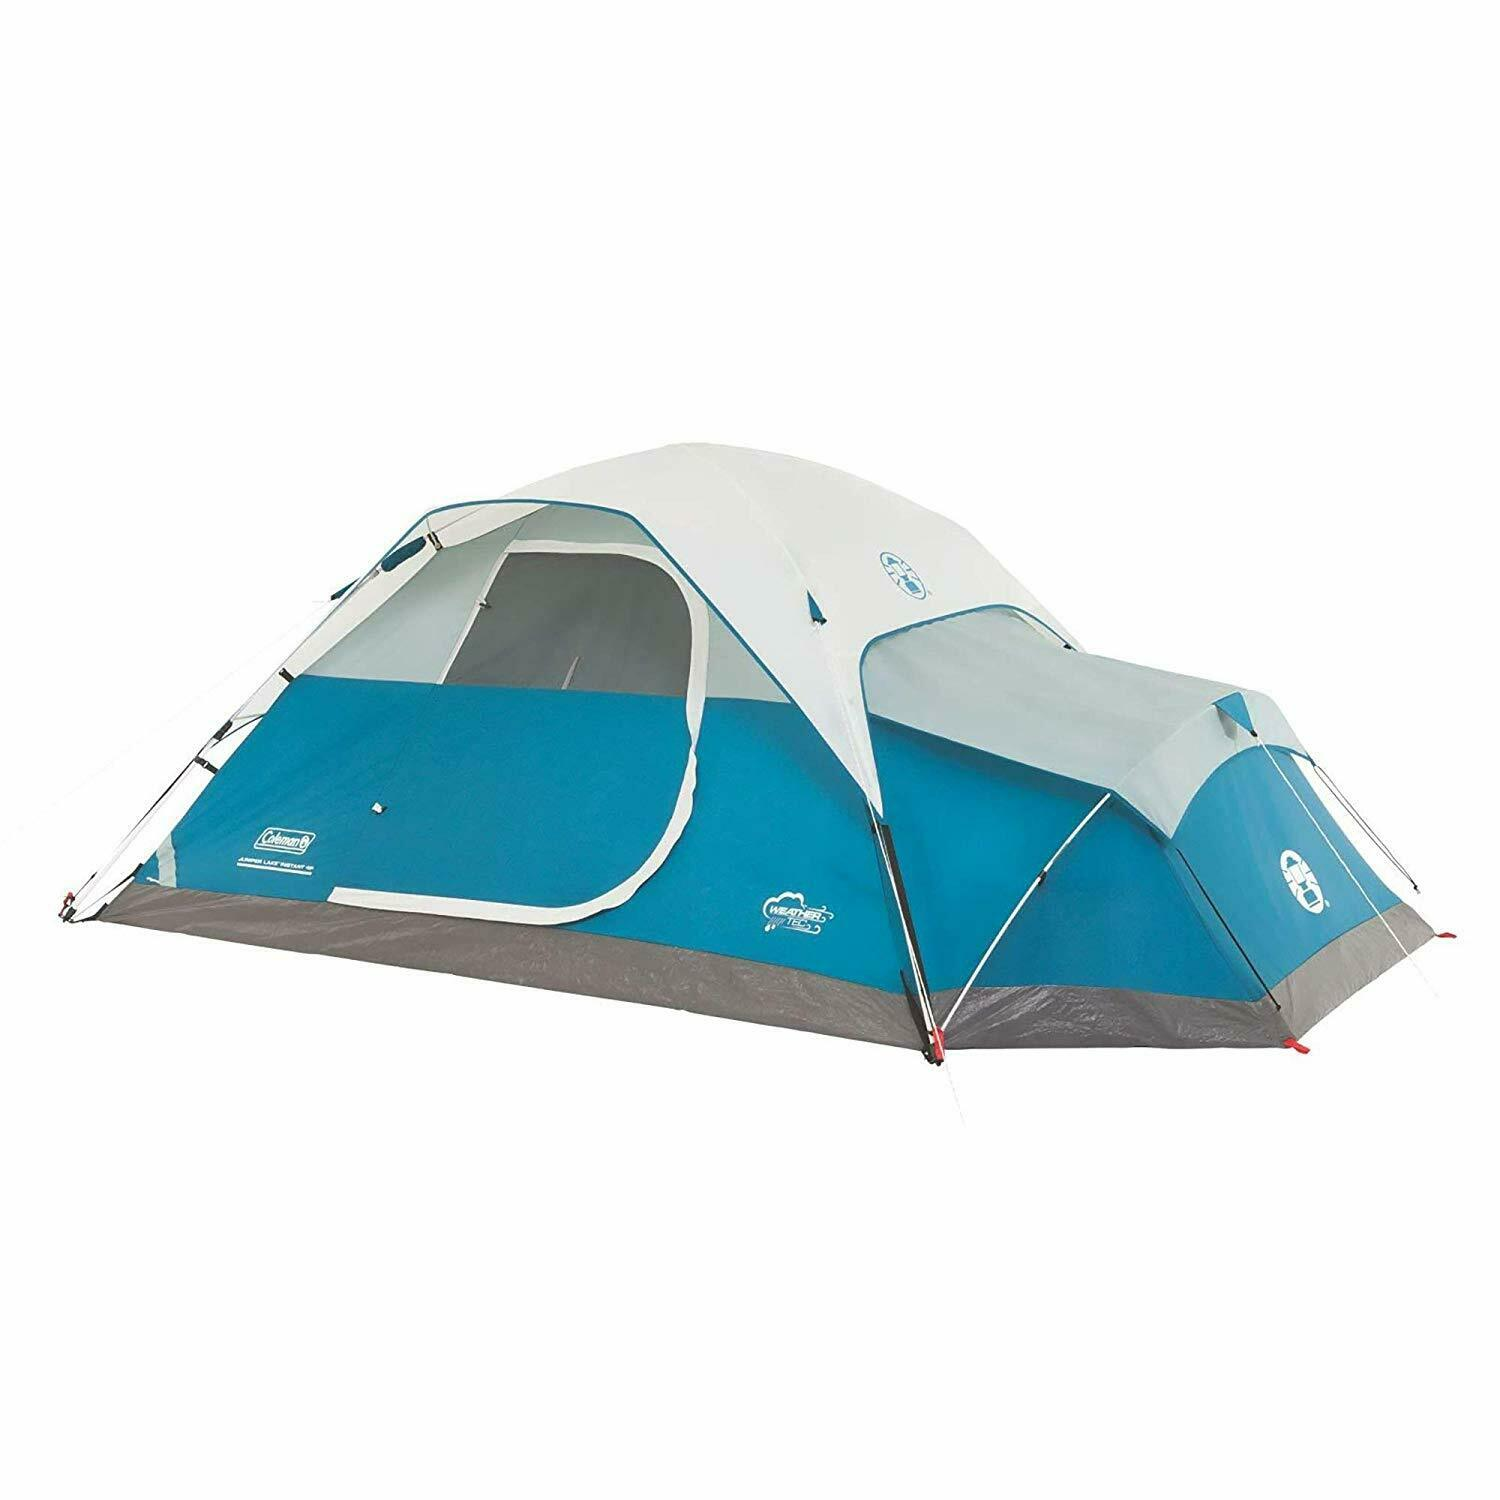 Dome Tent 4 Person Hunting Camping Yurt Outdoor Camp Concert Festival Weekend